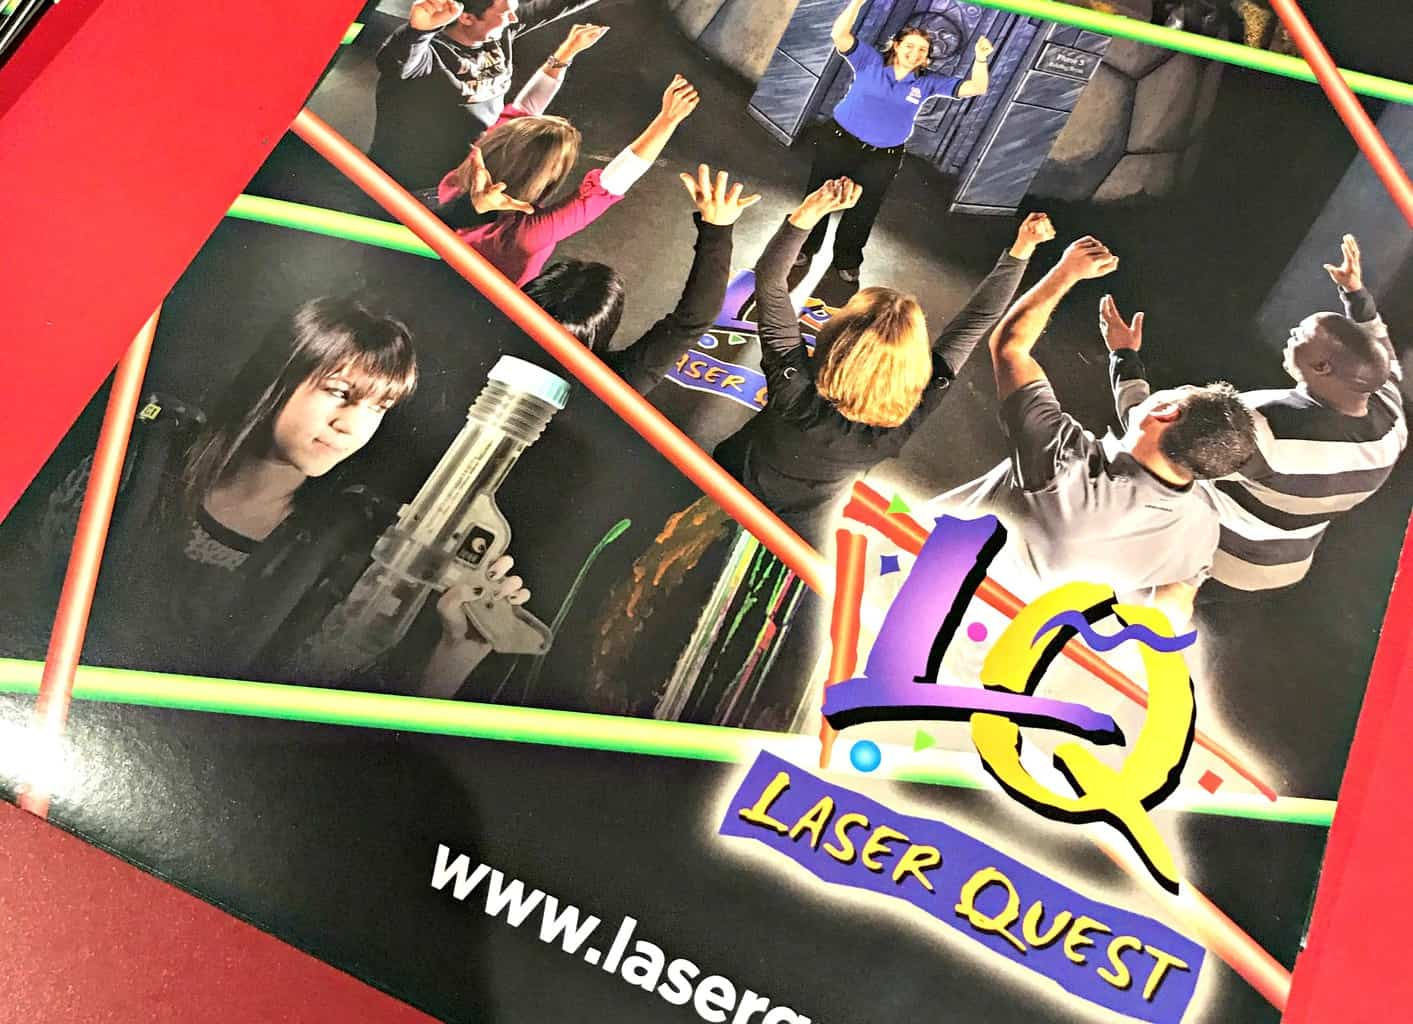 Are you looking for a fun place to host a tween birthday party in Orange County? Nobody does Birthdays like Laser Quest Mission Viejo. Parents love Laser Quest because their birthday packages are hassle-free. Teenagers love Laser Quest for their high-energy, interactive fun.